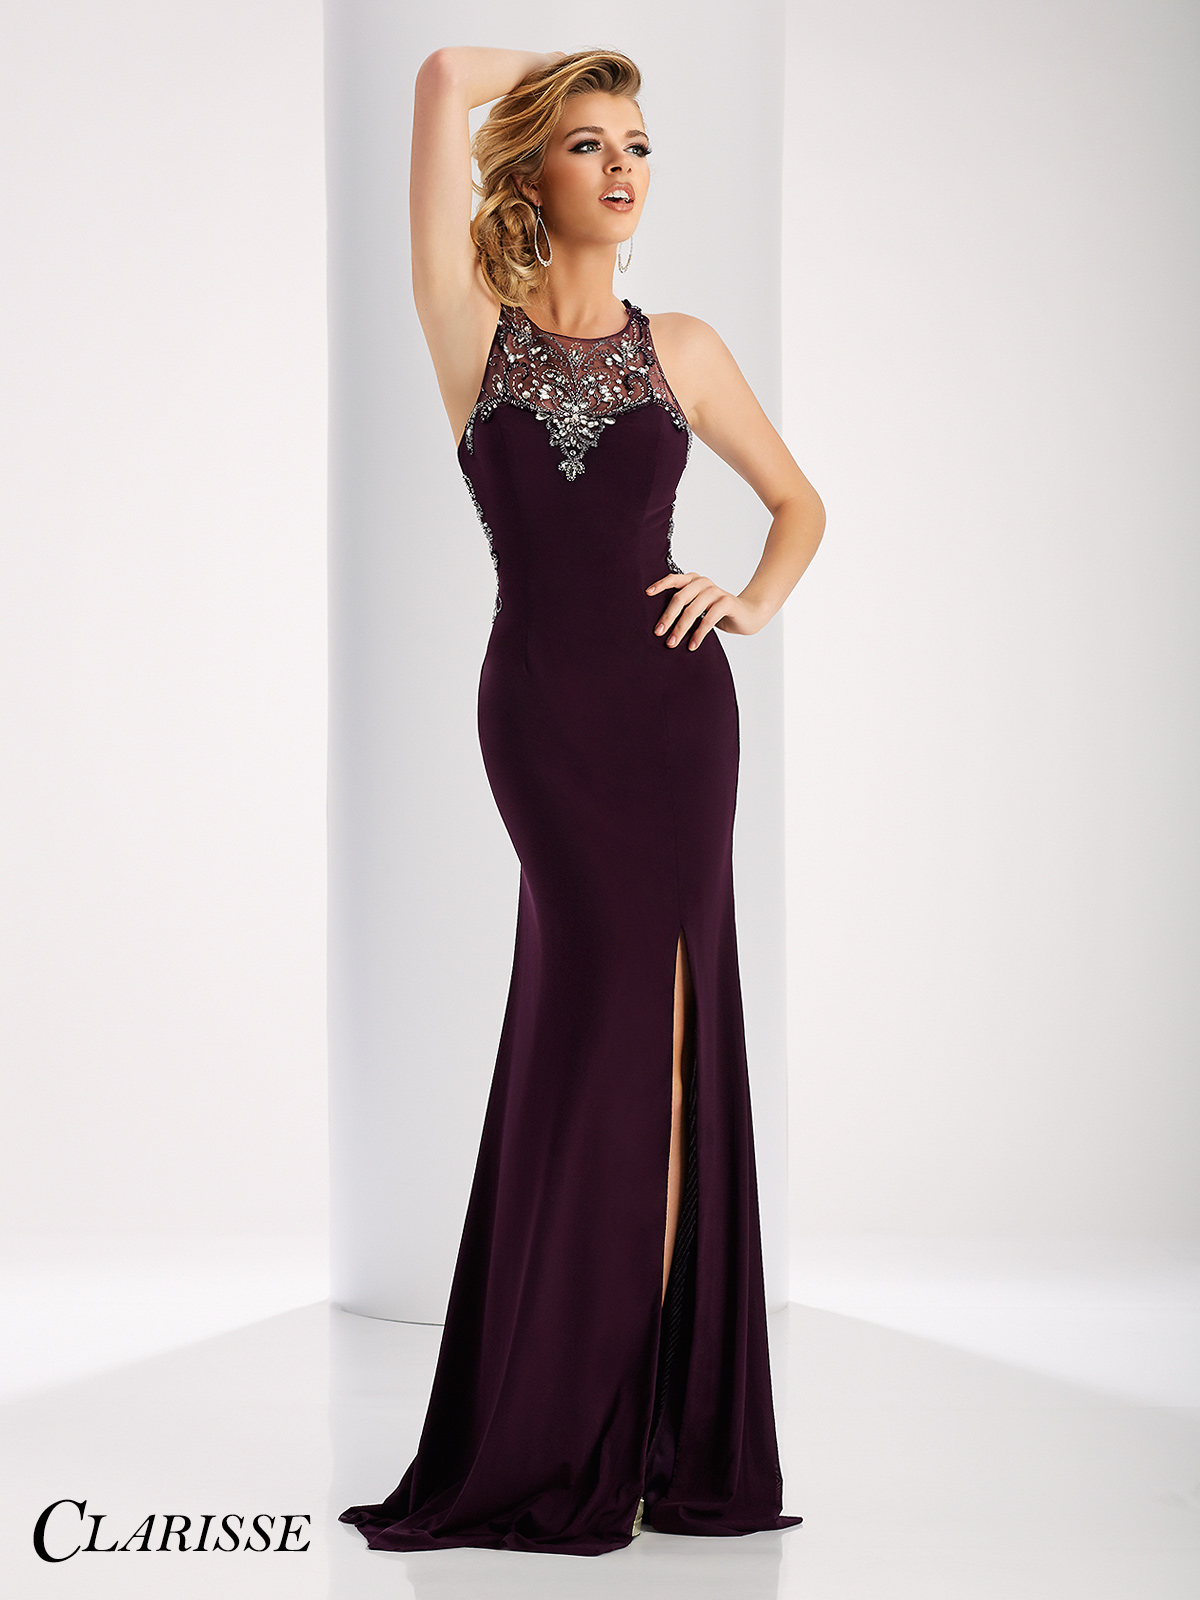 Clarisse Sparkling Embellished Prom Dress